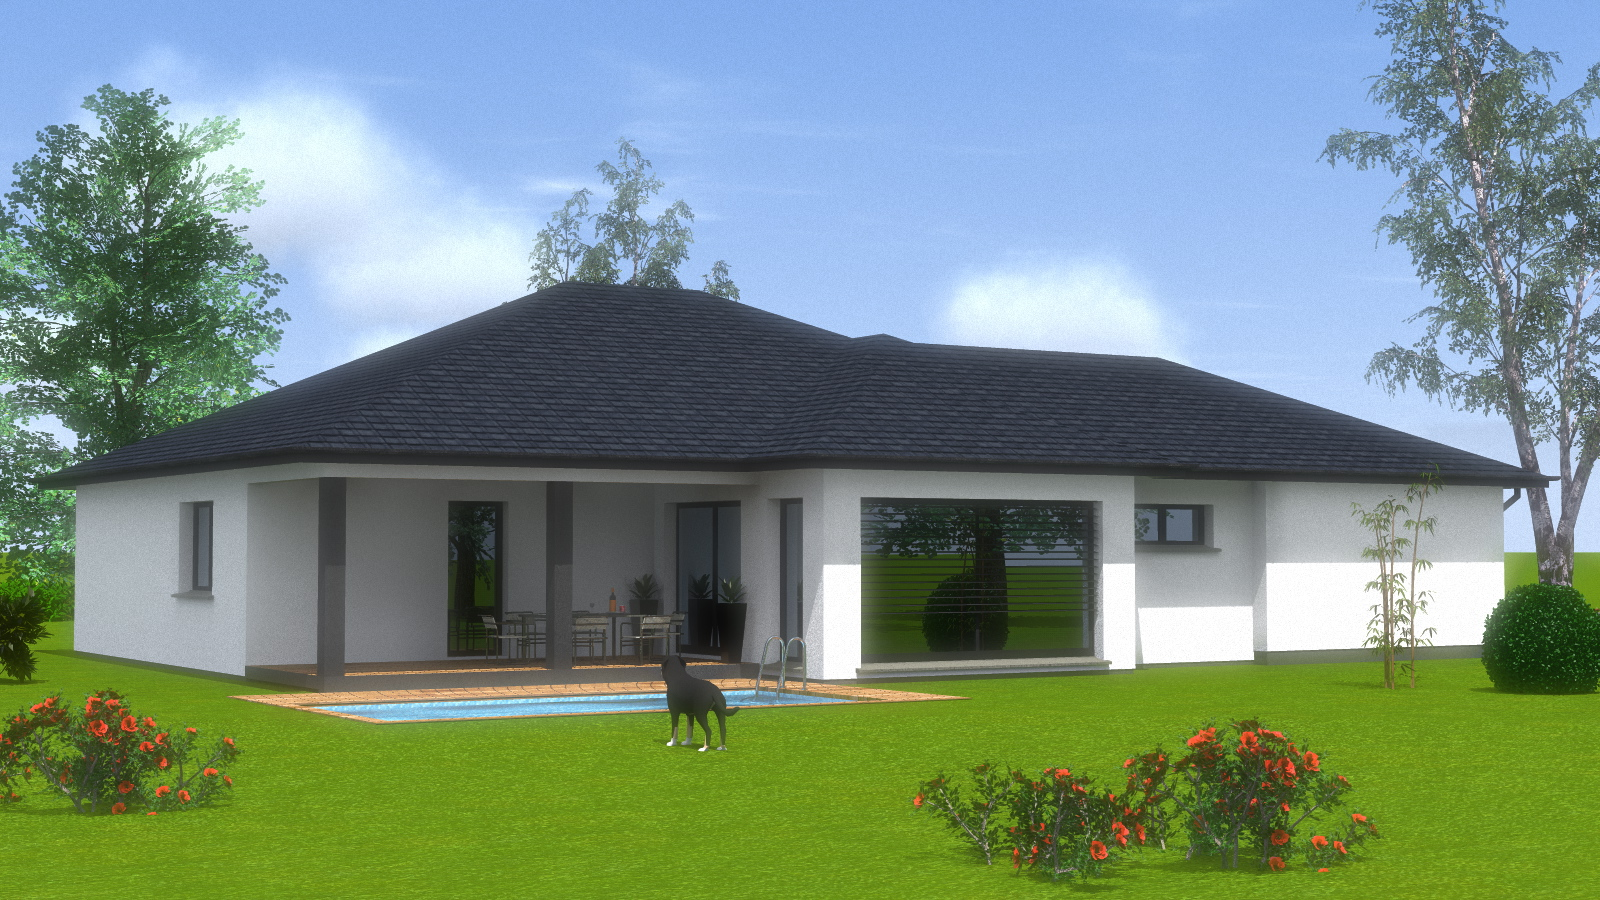 Construction maison de plain pied maisons begimaisons begi - Modele de maison contemporaine plain pied ...